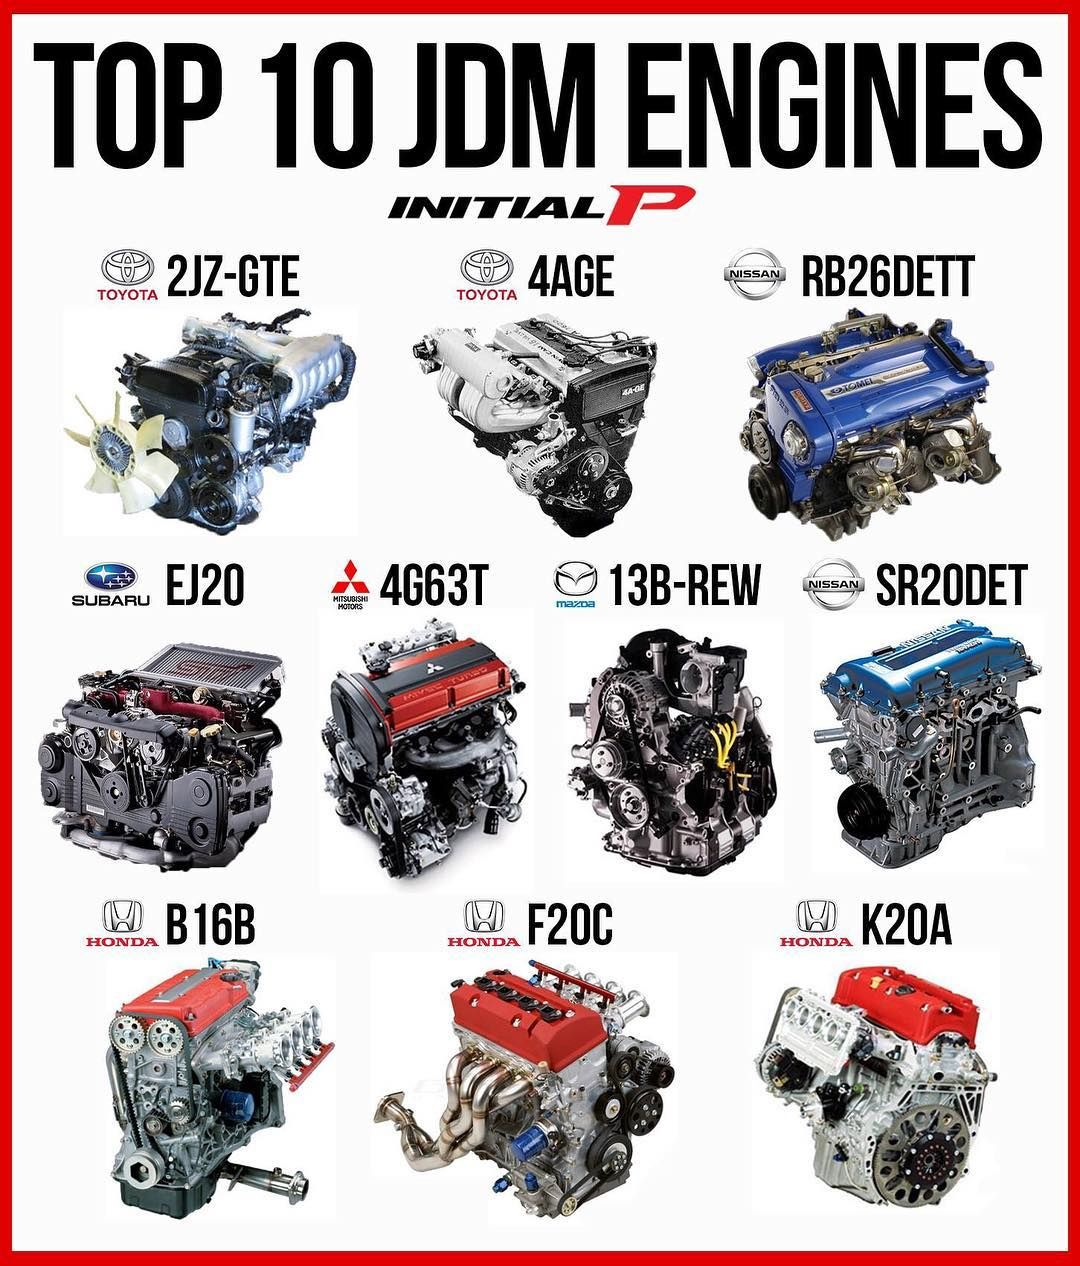 Pin by Nsomnia Redline on Tuners / Other race cars | Jdm engines